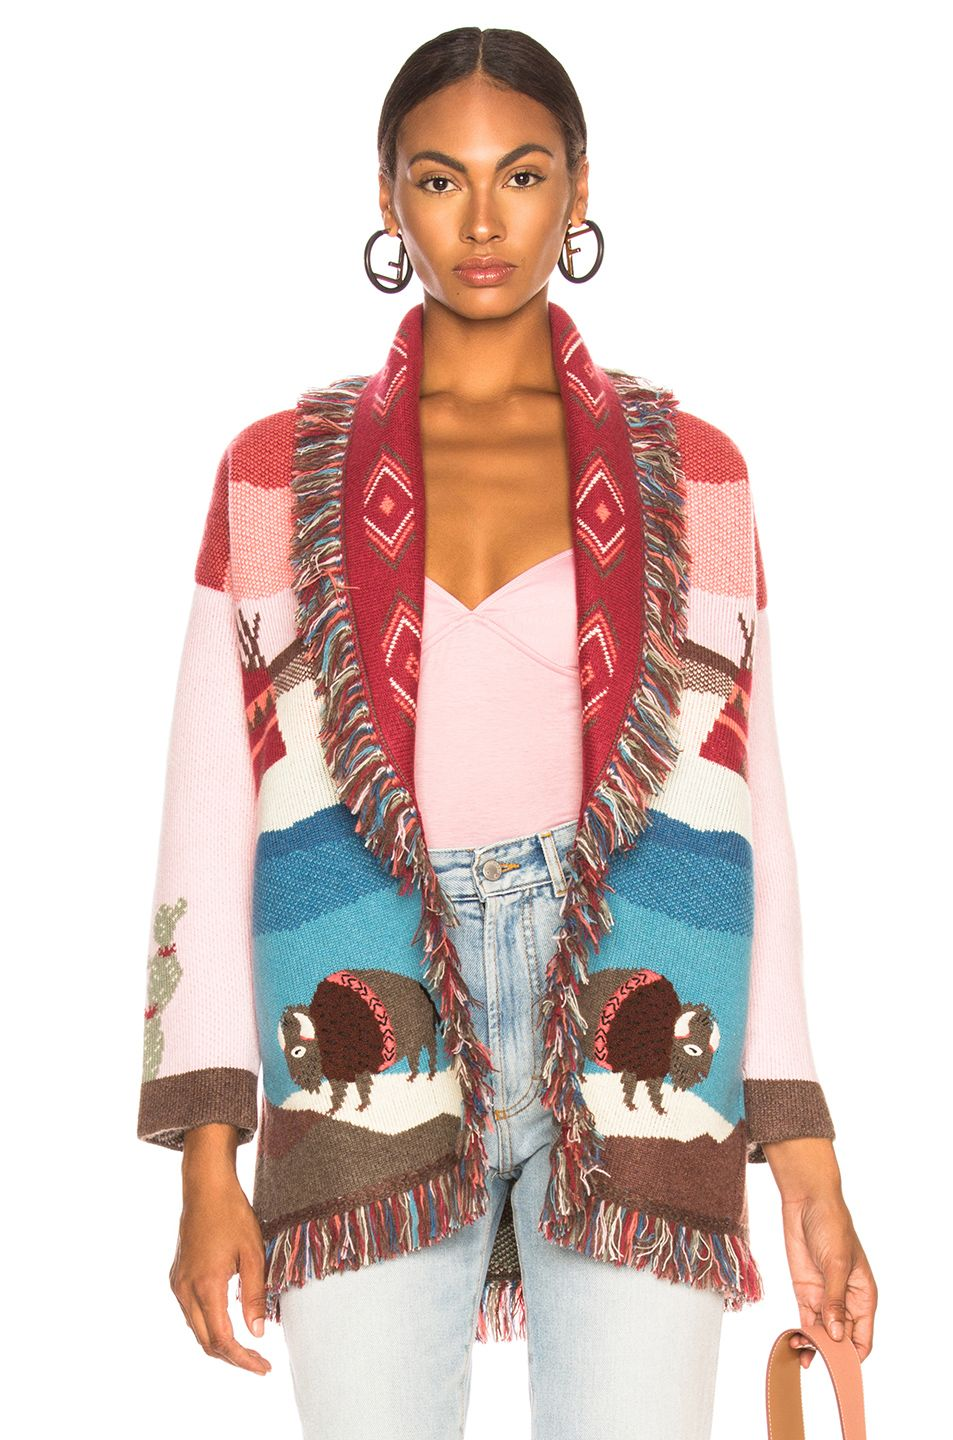 86b24cddef Image 1 of ALANUI Lunar Phases Oversized Jacquard Cardigan in Ophelia Pink  Multi